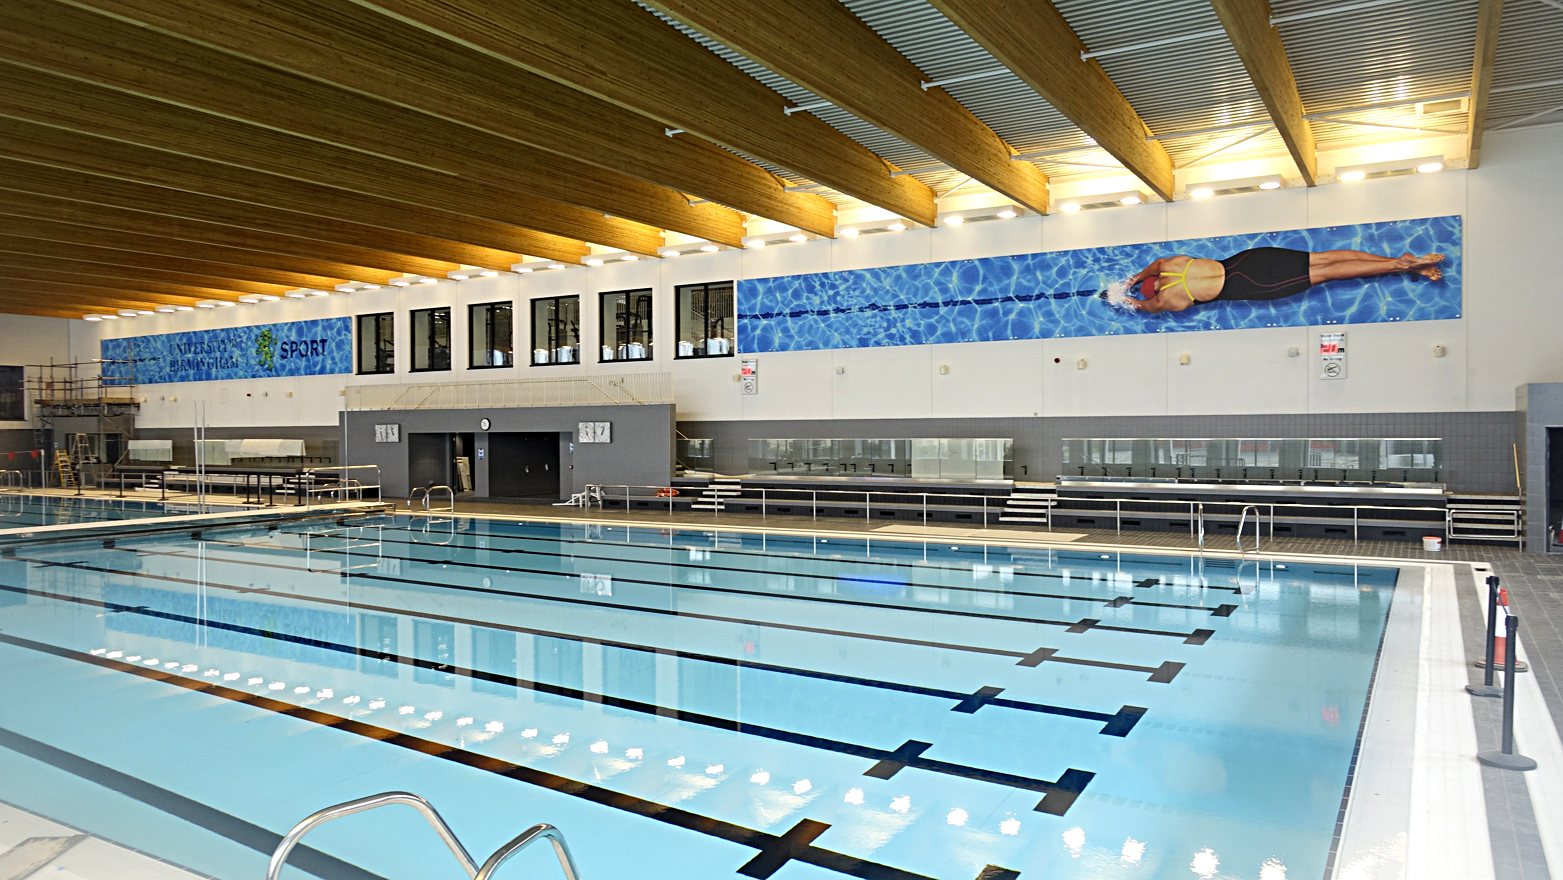 Ltdltduniversity of birmingham swimming pool ltdltd - University of birmingham swimming pool ...